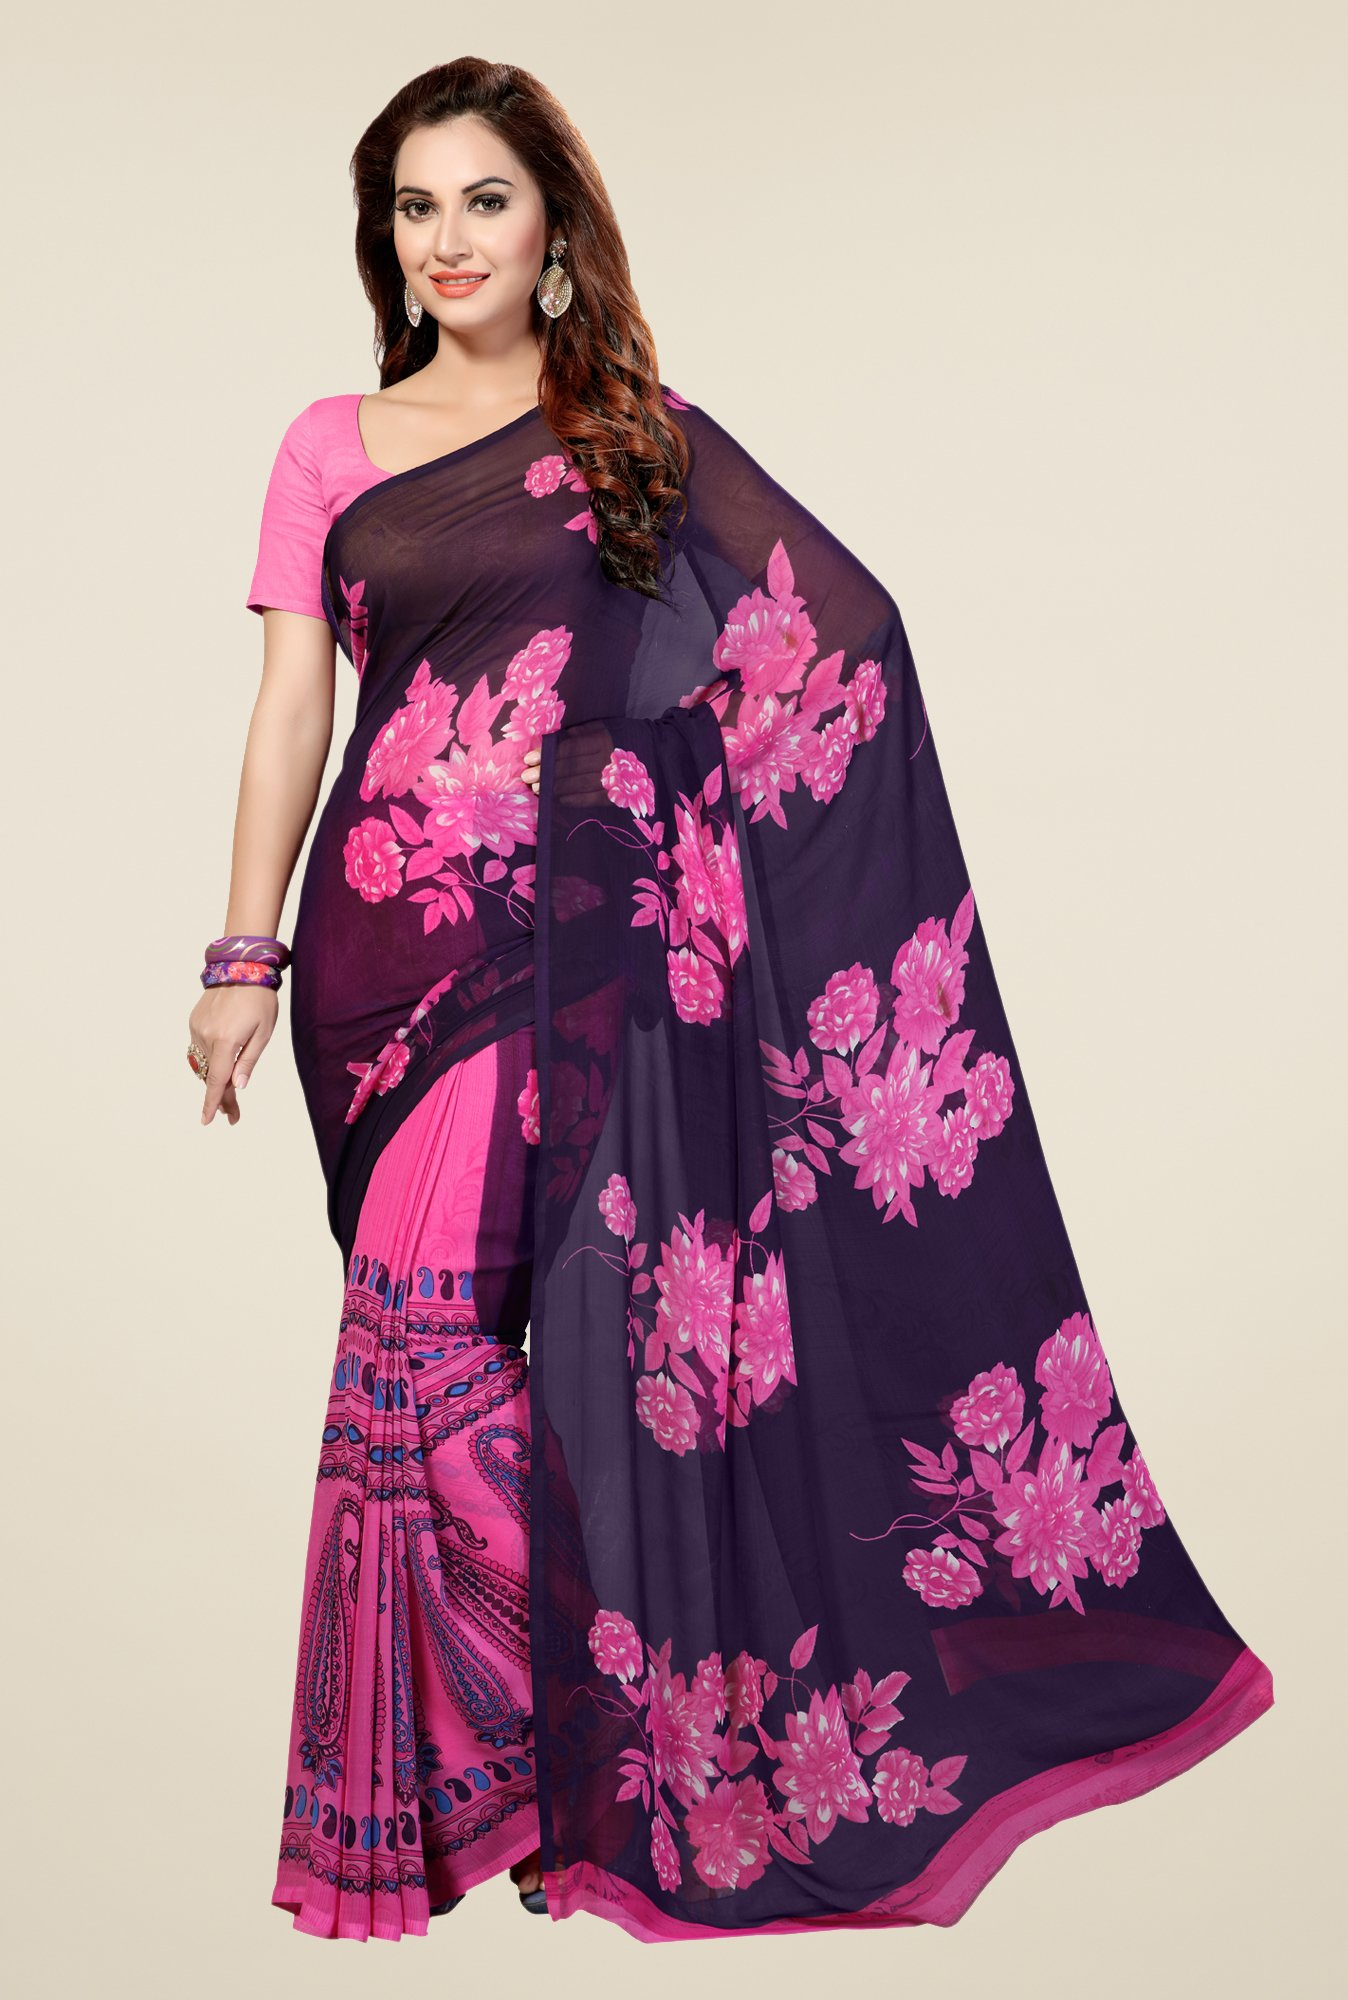 Ishin Pink & Navy Faux Georgette Floral Print Saree